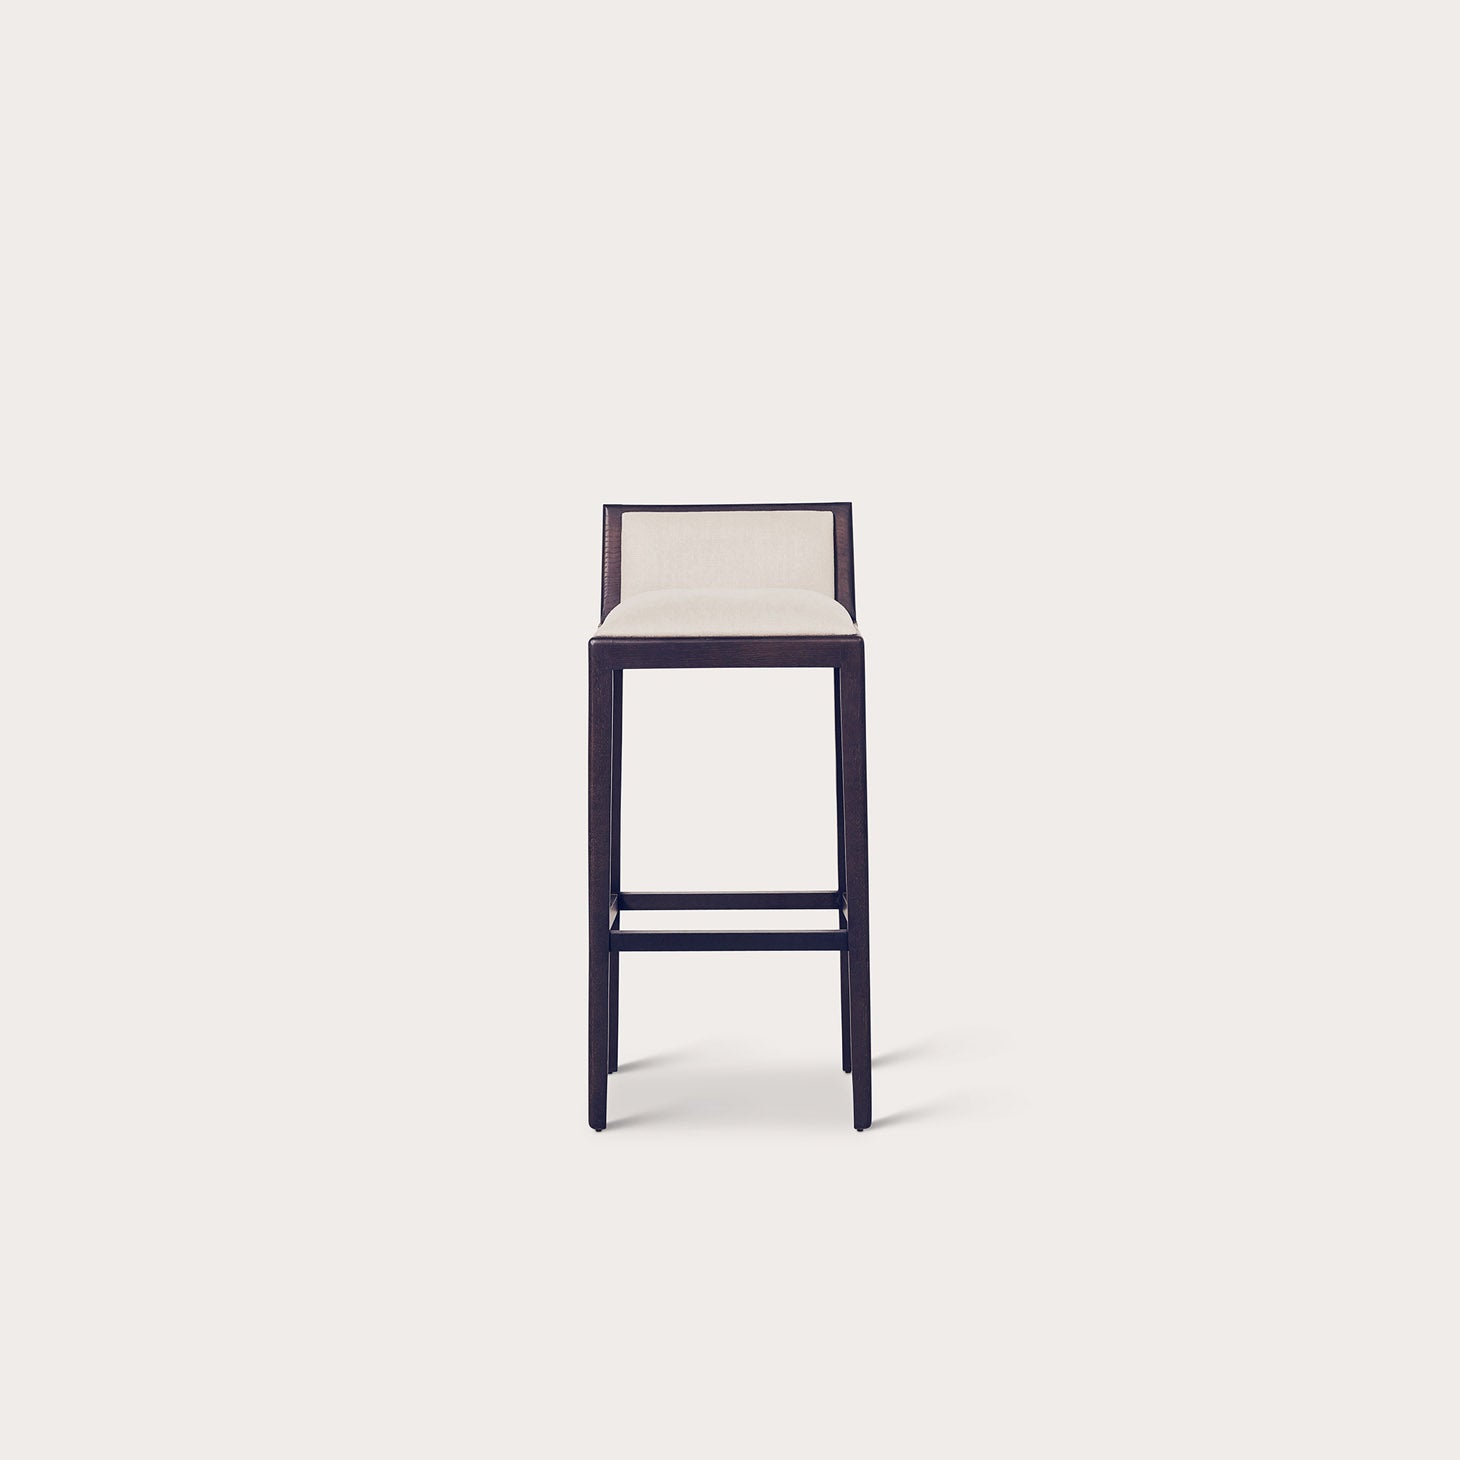 EOL Barstool Seating Christophe Delcourt Designer Furniture Sku: 008-120-10029